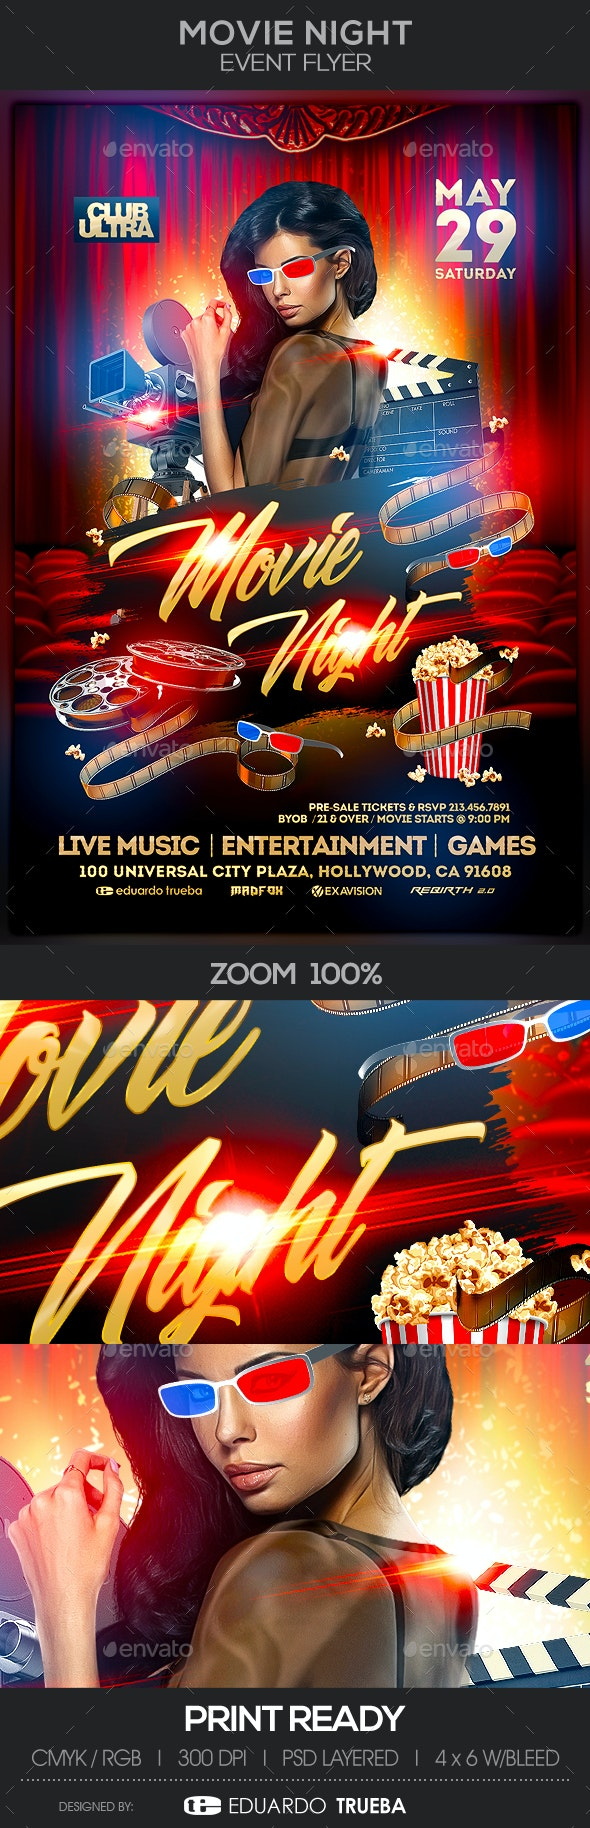 Movie Night Event Flyer - Events Flyers